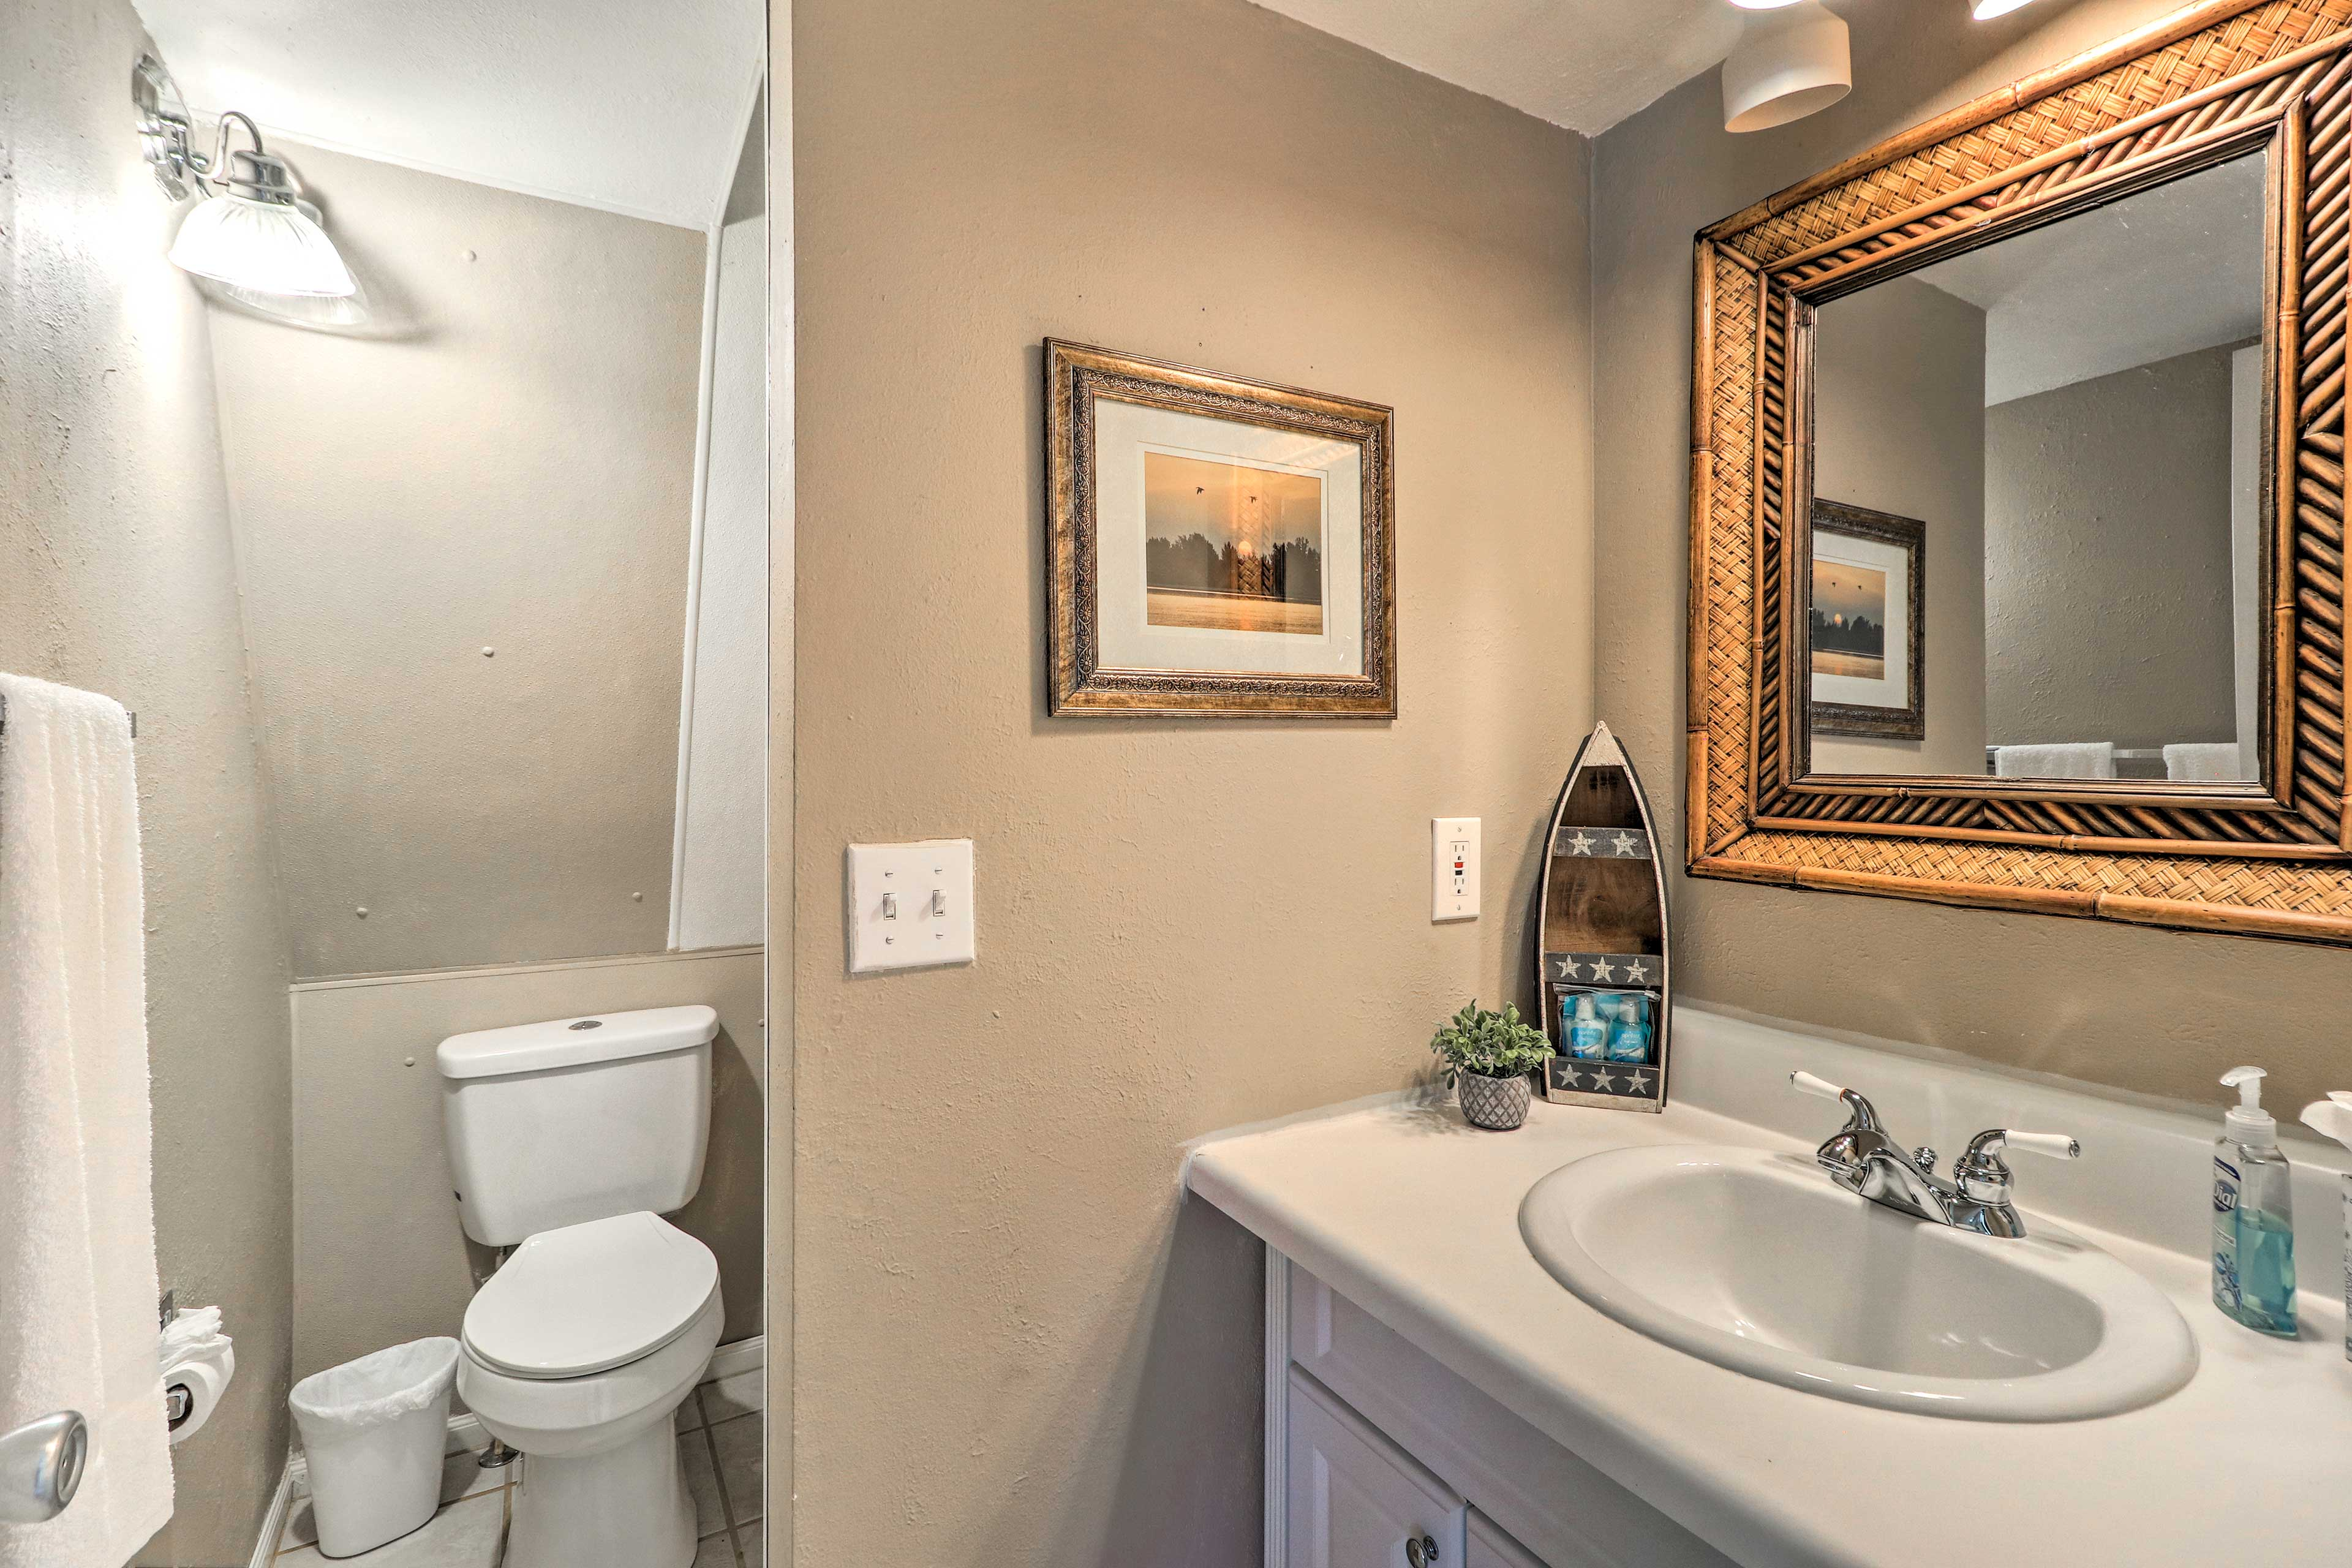 Get ready for the day in this charming bathroom.